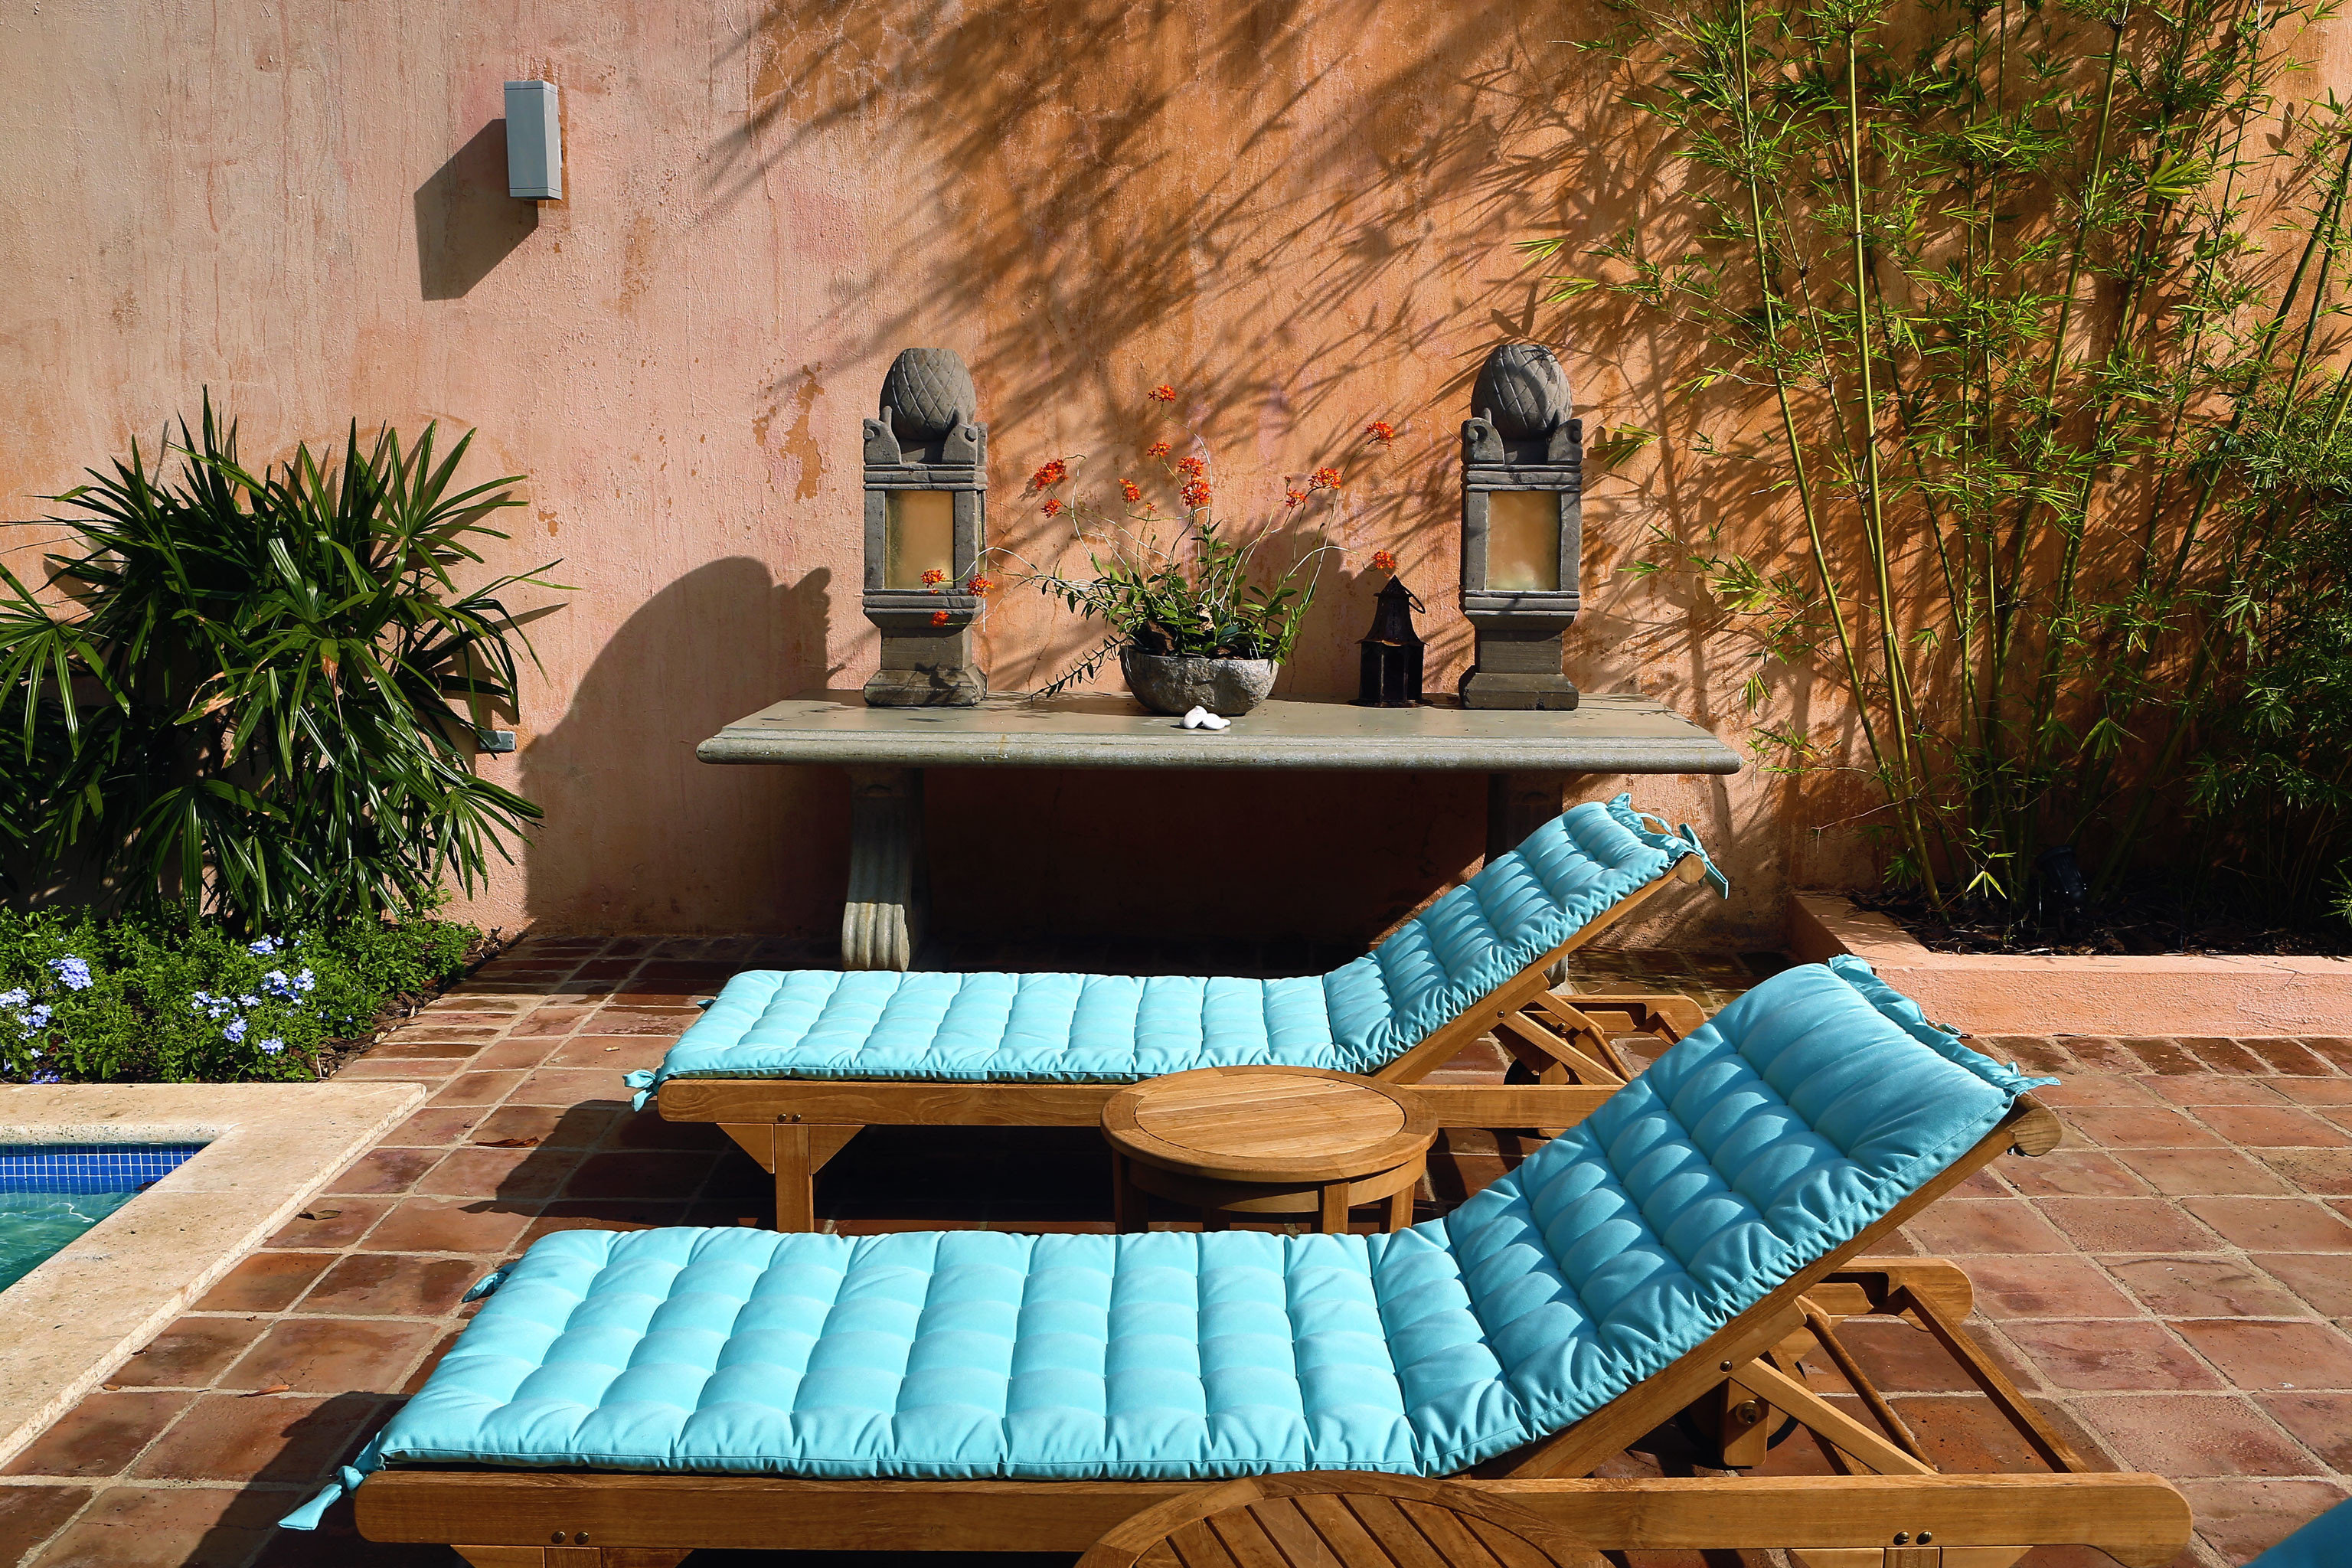 Boutique Cultural Historic Hotels Lounge Outdoors Patio Pool outdoor swimming pool property backyard wall estate outdoor structure home Courtyard Villa furniture yard cottage